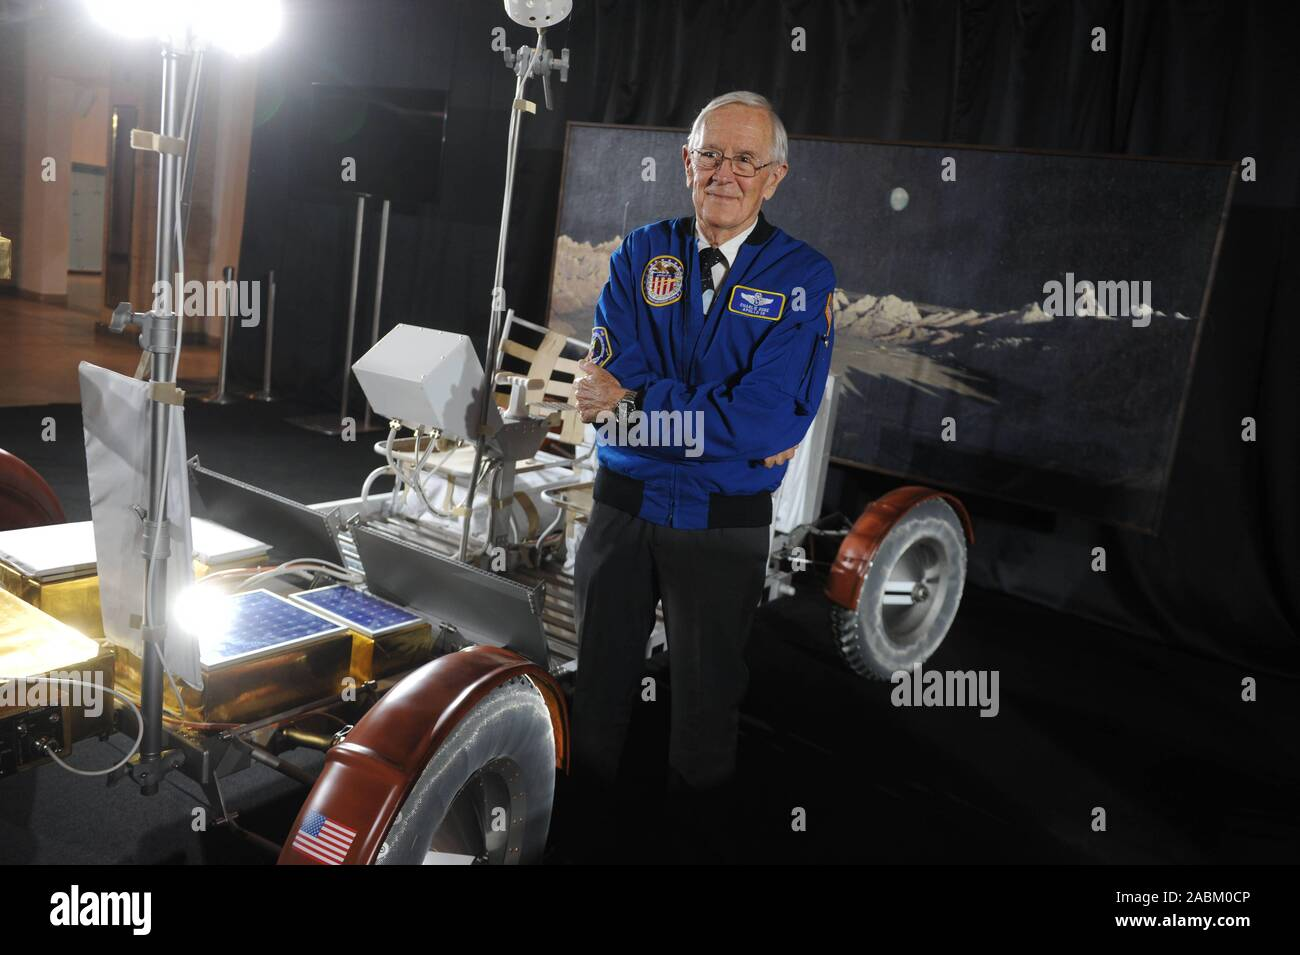 """The US astronaut Charles """"Charlie"""" Moss Duke talks about his experiences in space at the Deutsches Museum. Duke piloted the lunar module of the Apollo 16 mission in 1972 and drove over the moon by car after landing. The picture shows the youngest Moonwalker to date with a replica of a rover. [automated translation] Stock Photo"""